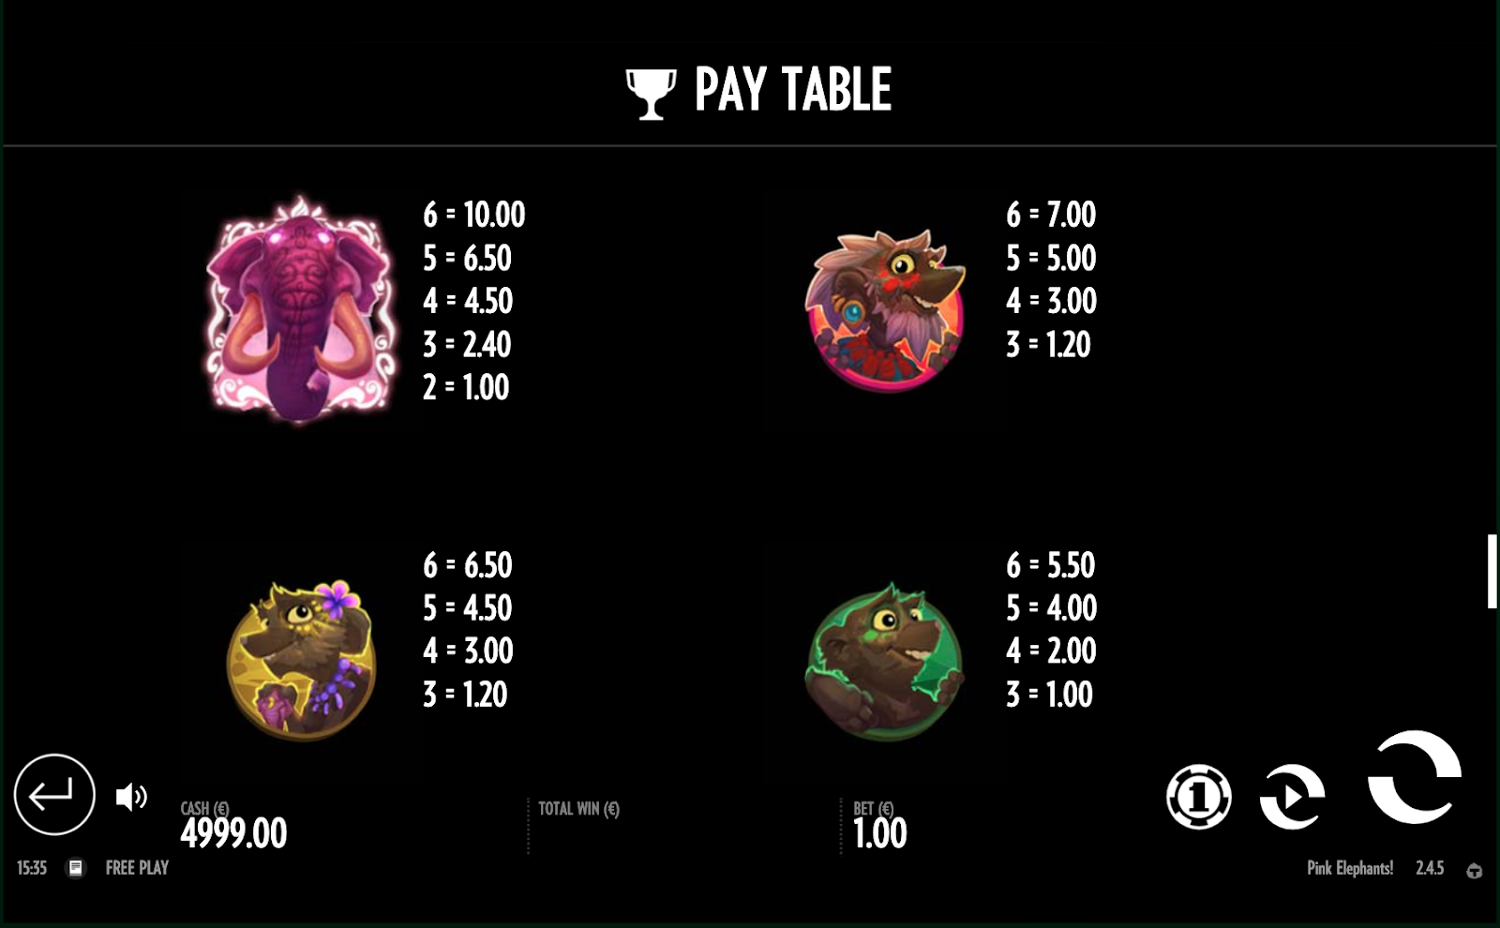 Pink Elephants paytable